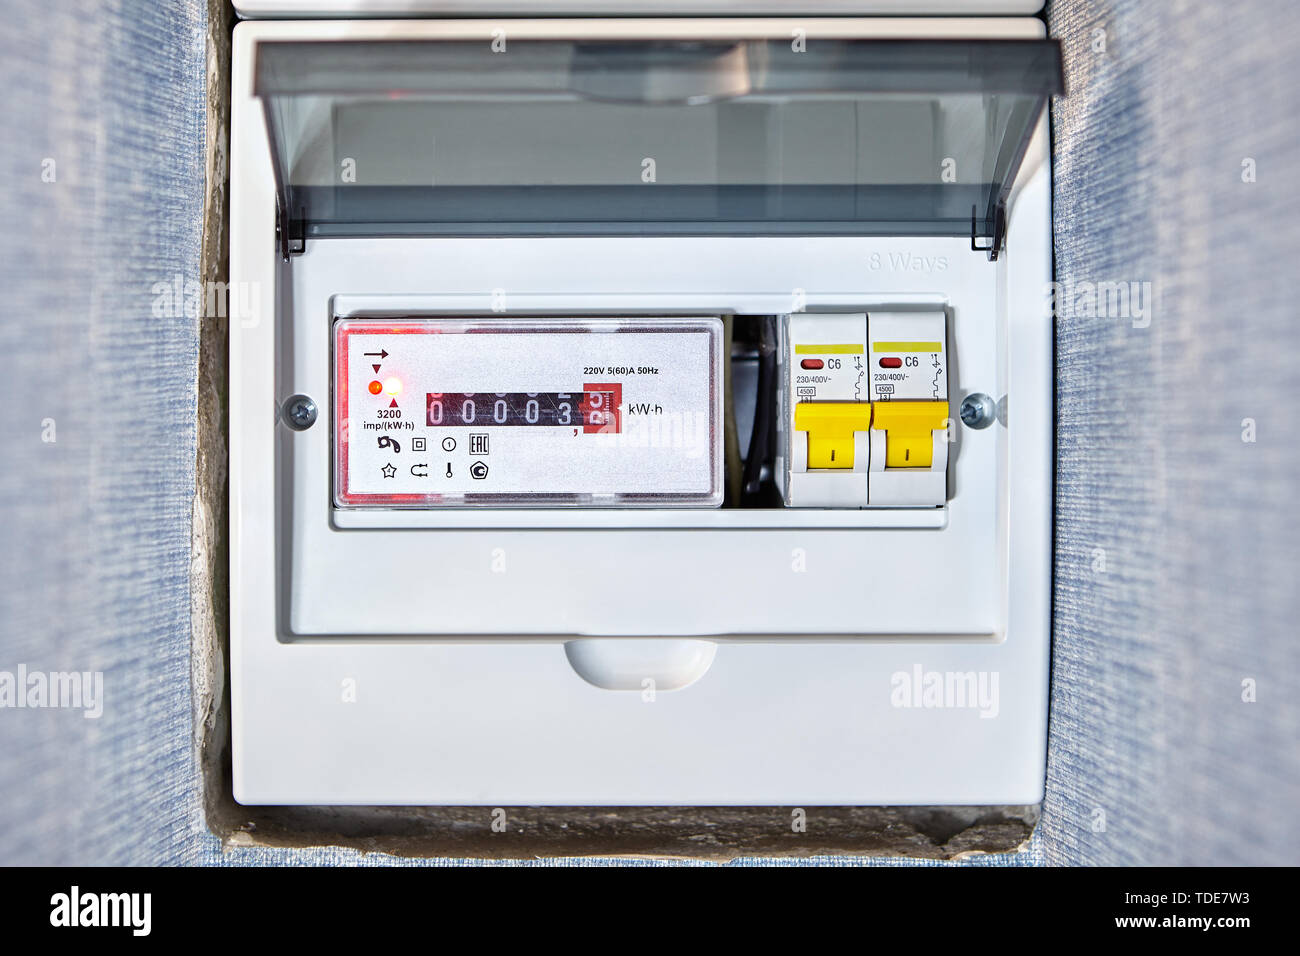 domestic fuse box high resolution stock photography and images - alamy  alamy